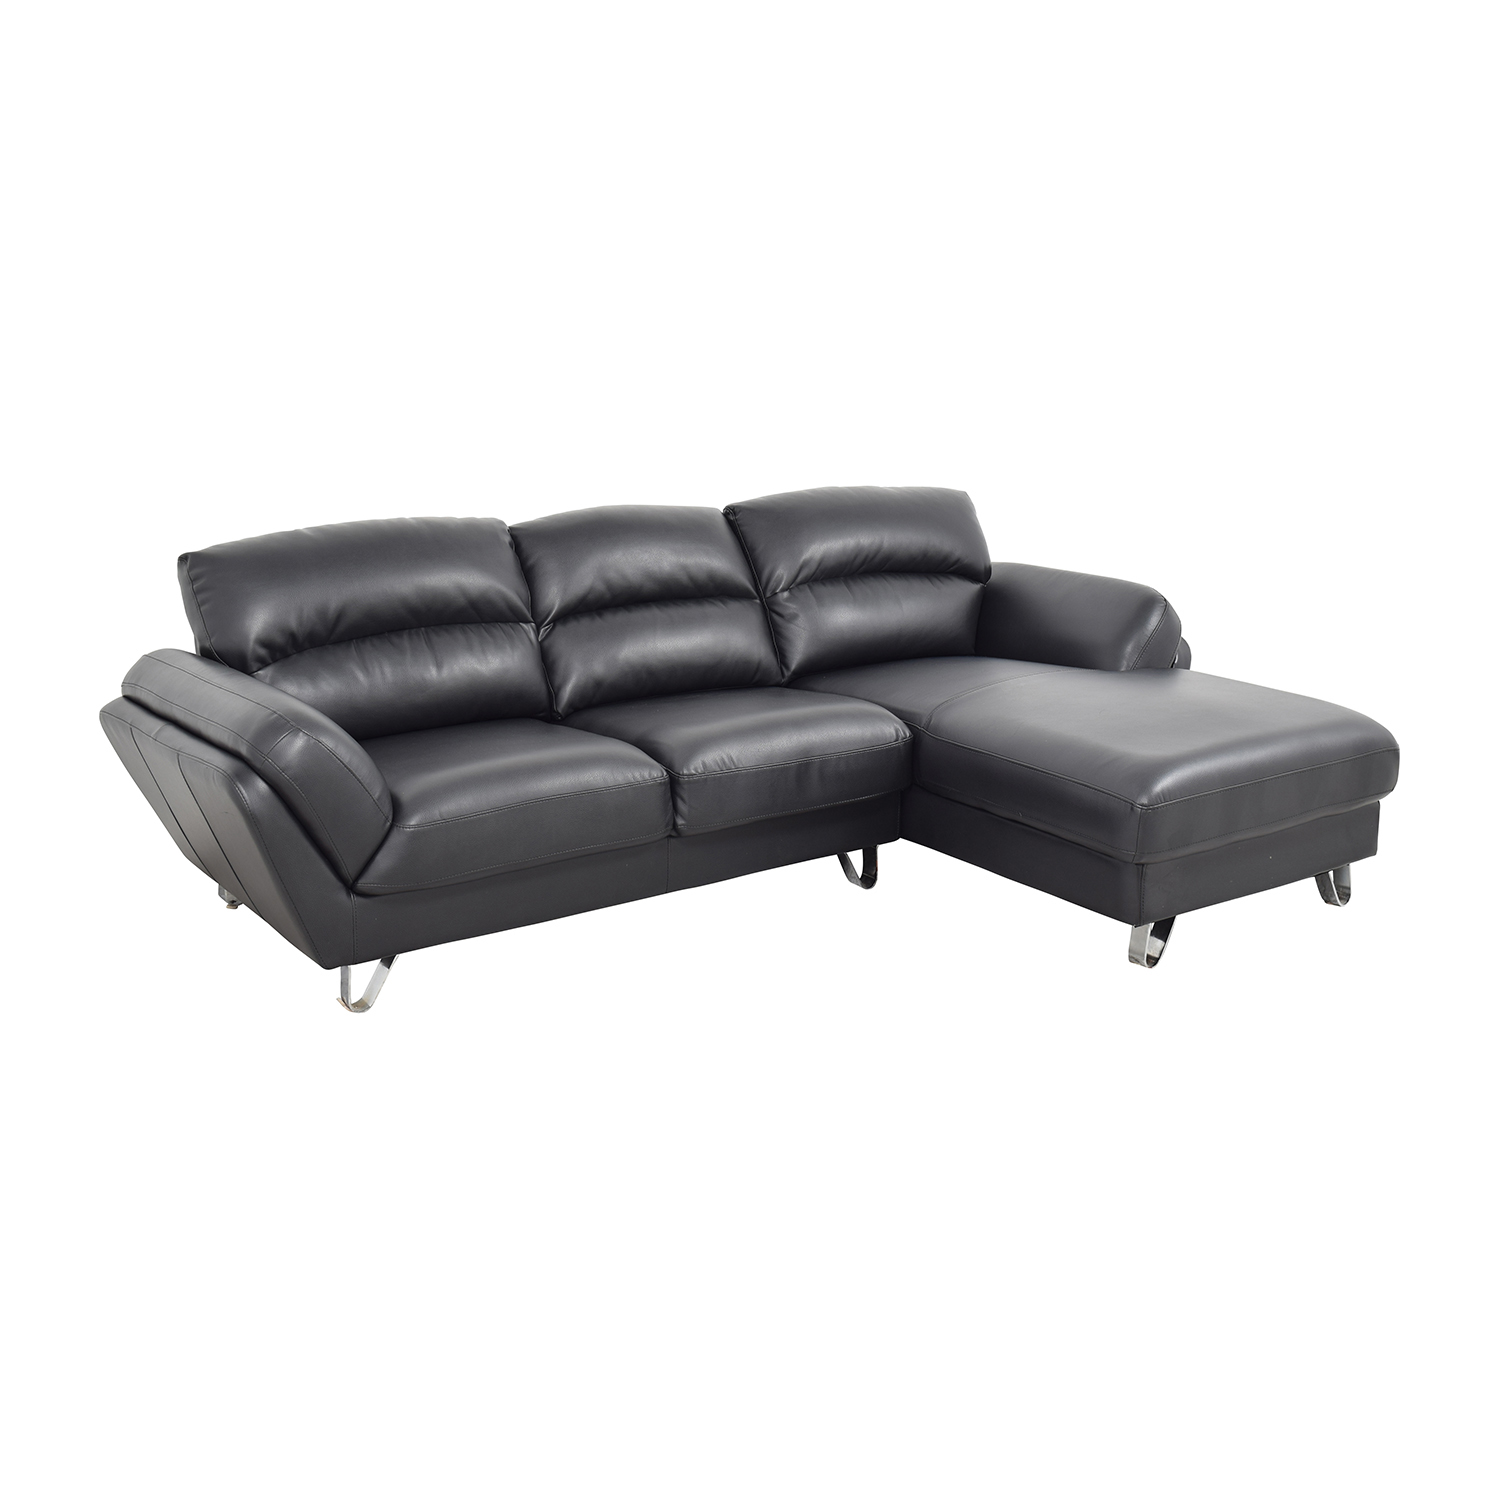 51% OFF Contemporary Faux Leather Two piece Sectional Sofa Sofas